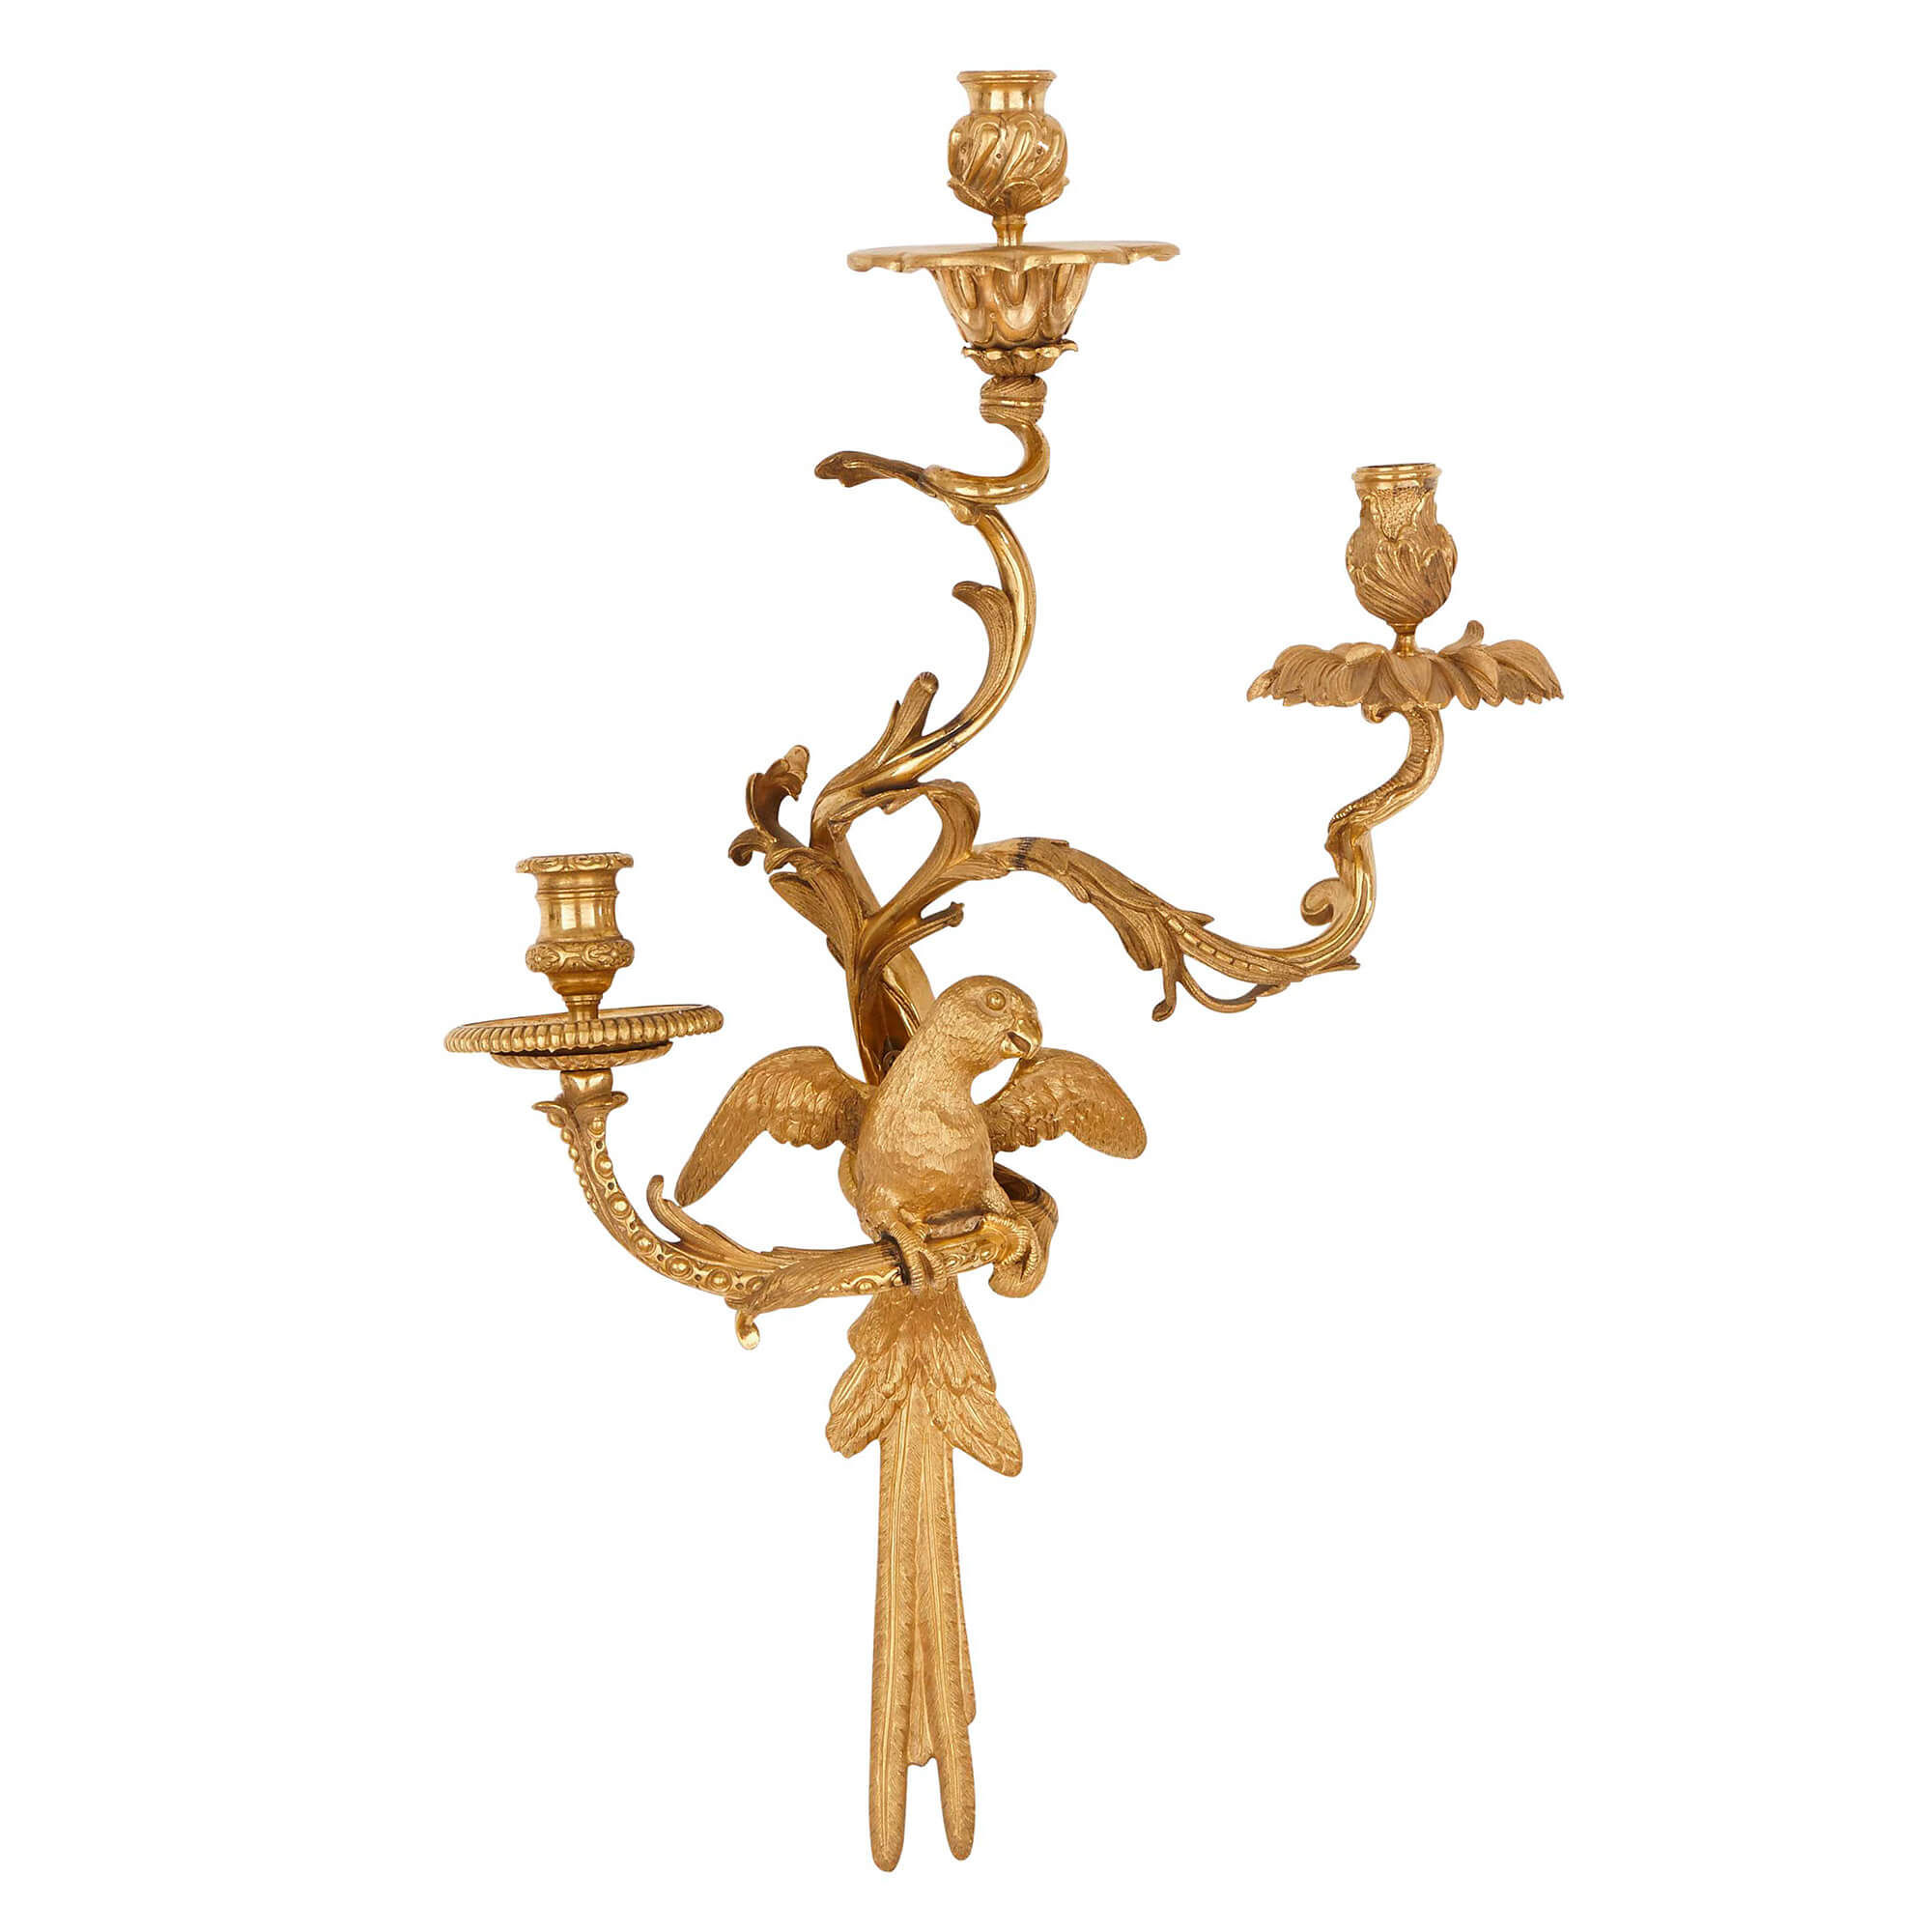 Pair of rococo style ormolu wall lights after cressent mayfair gallery pair of rococo style ormolu wall lights after cressent aloadofball Gallery